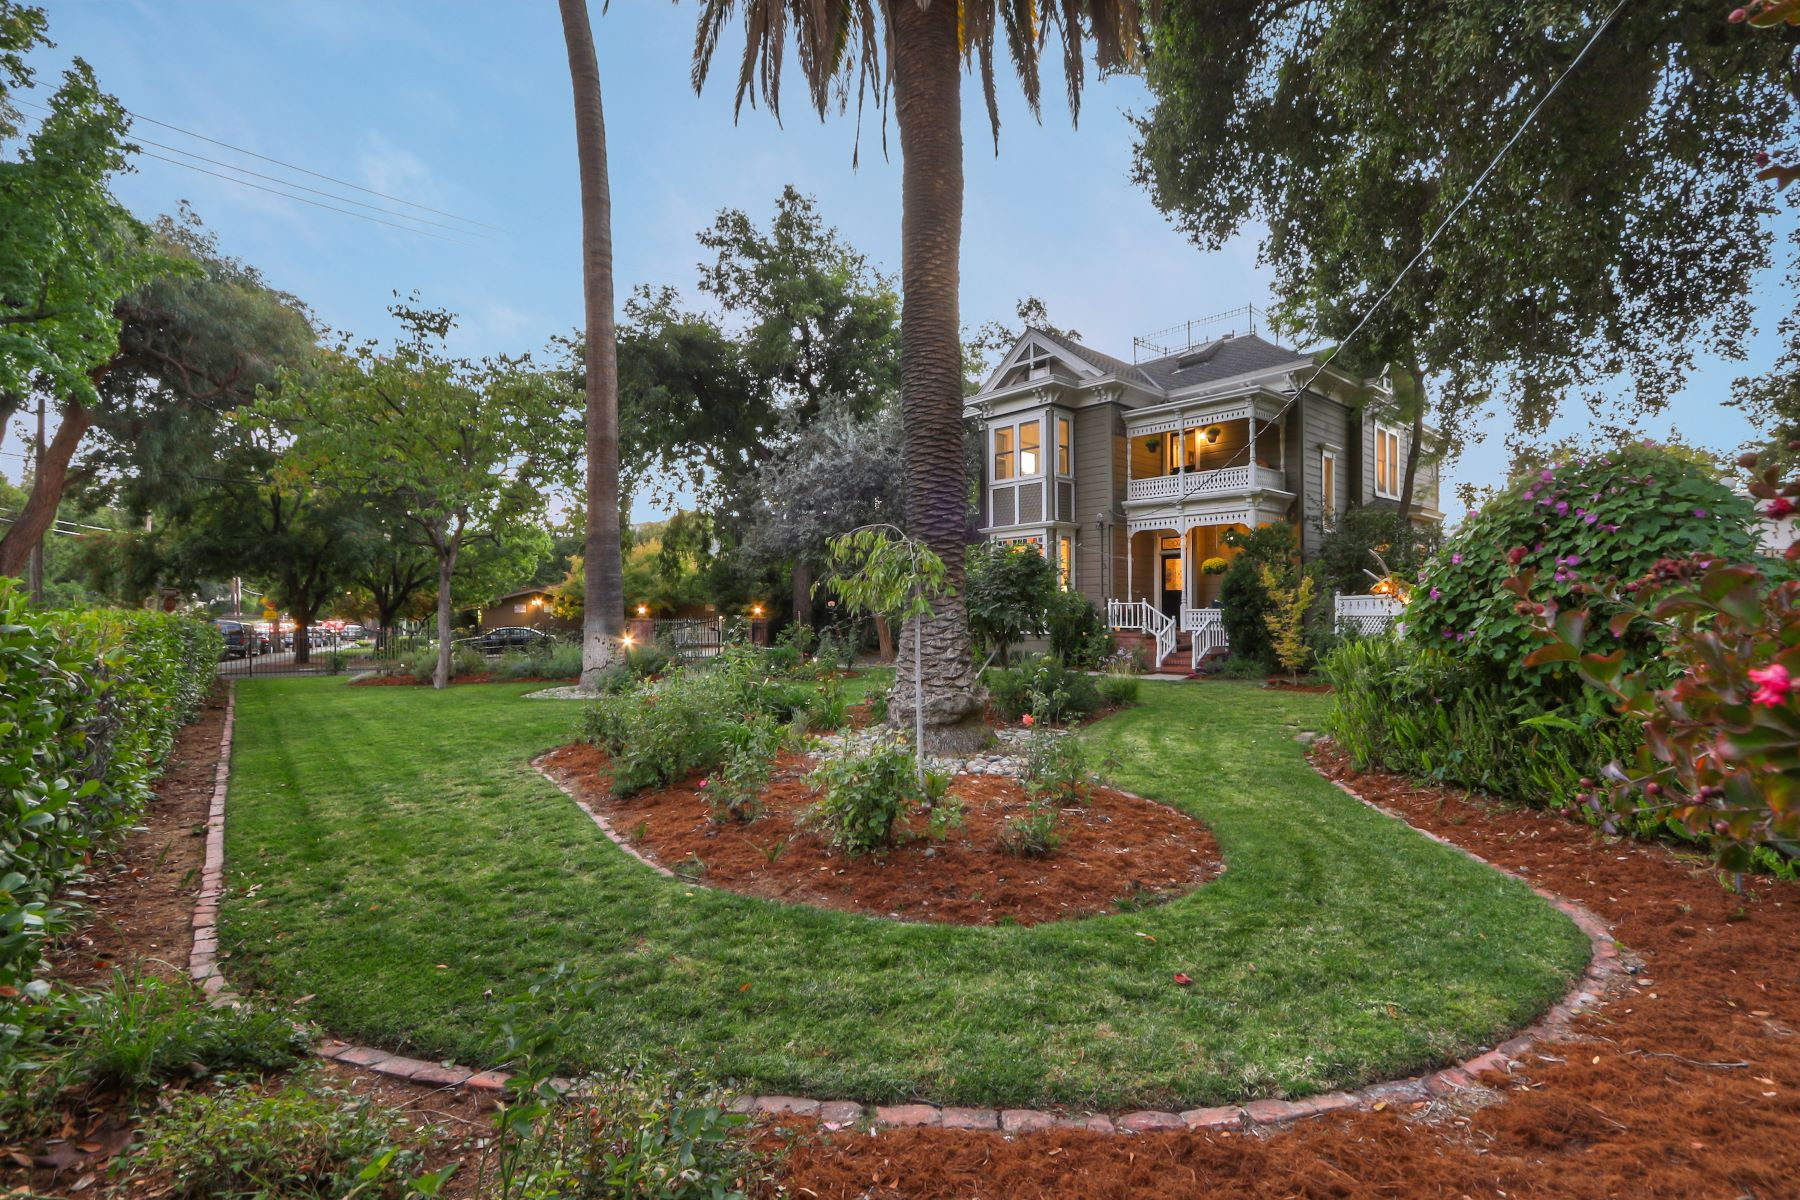 Single Family Homes for Sale at Iconic Victorian in Downtown Los Gatos! 207 Los Gatos Boulevard Los Gatos, California 95030 United States